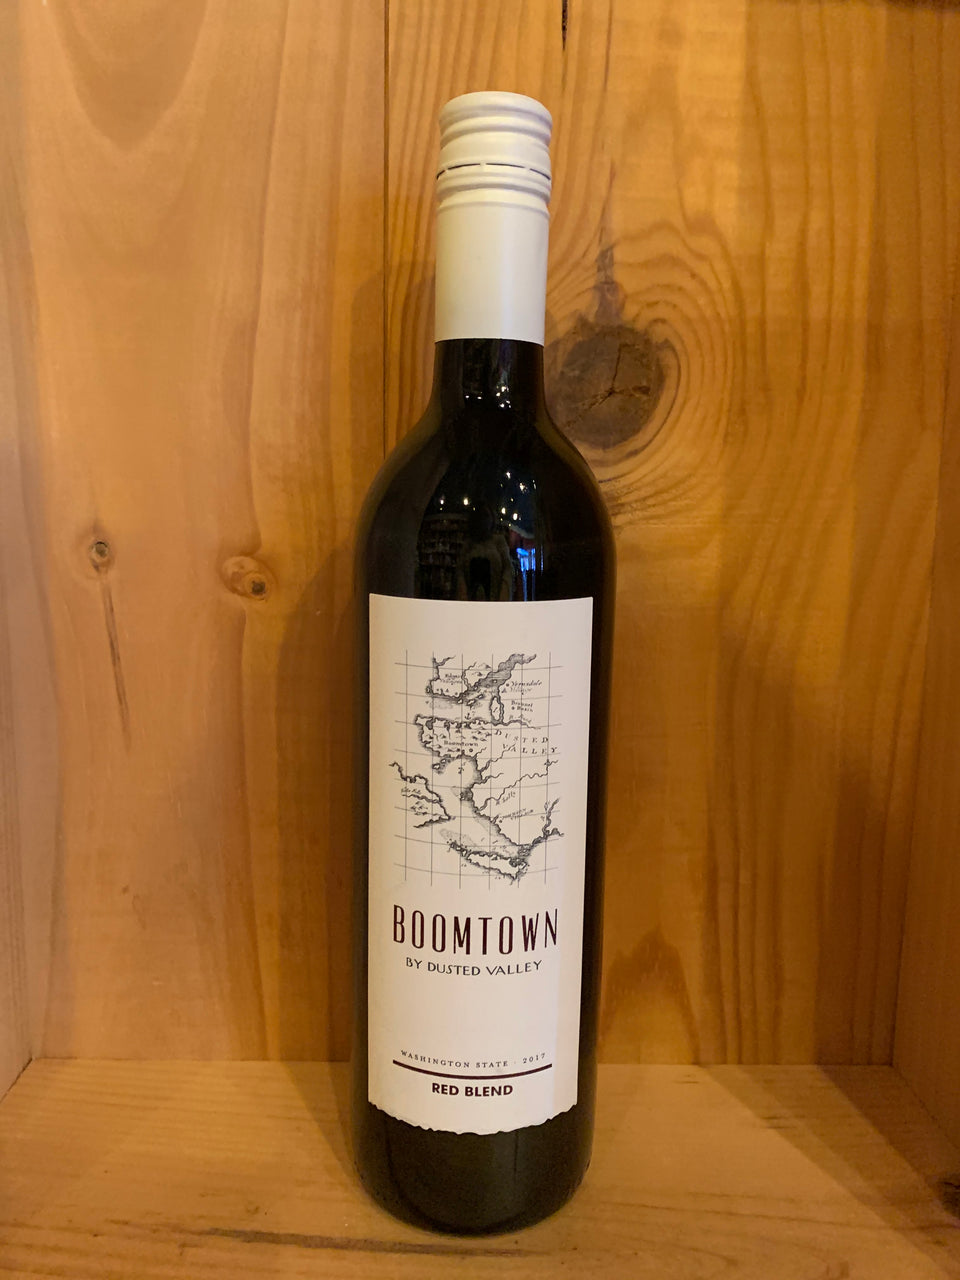 Boomtown 2017 Red Blend